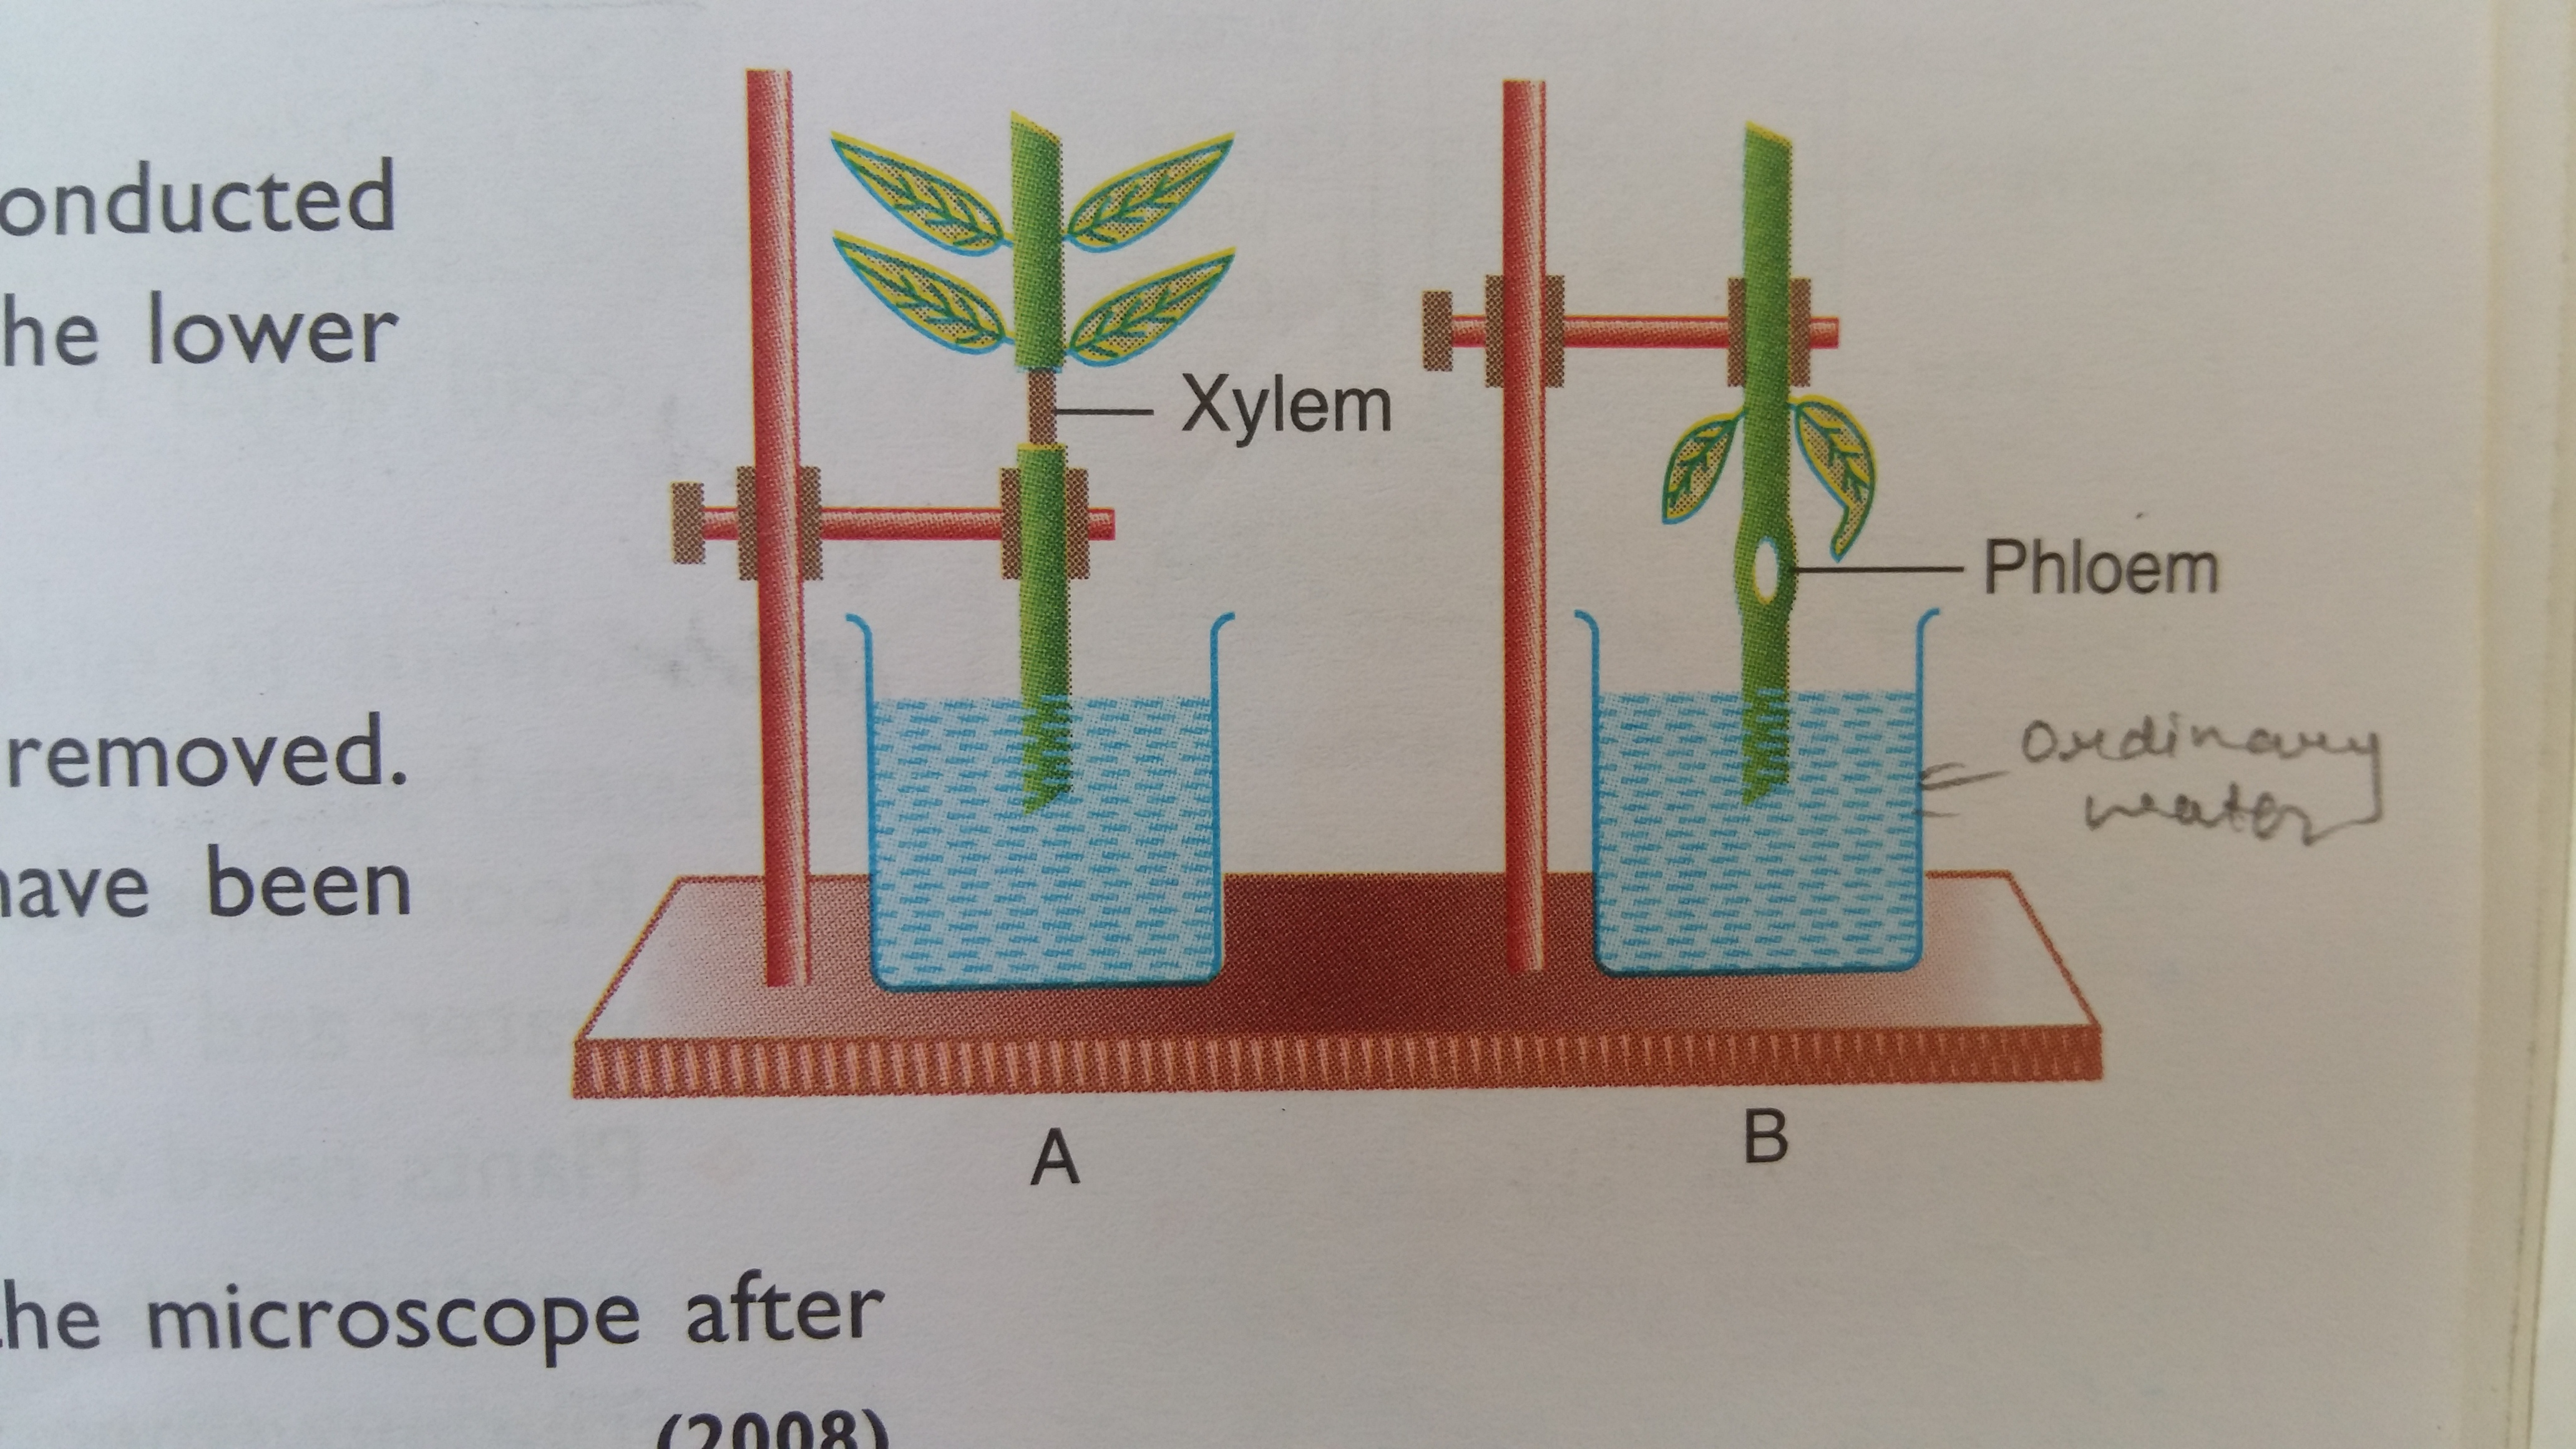 Difference Between Xylem And Phloem Under Microscope